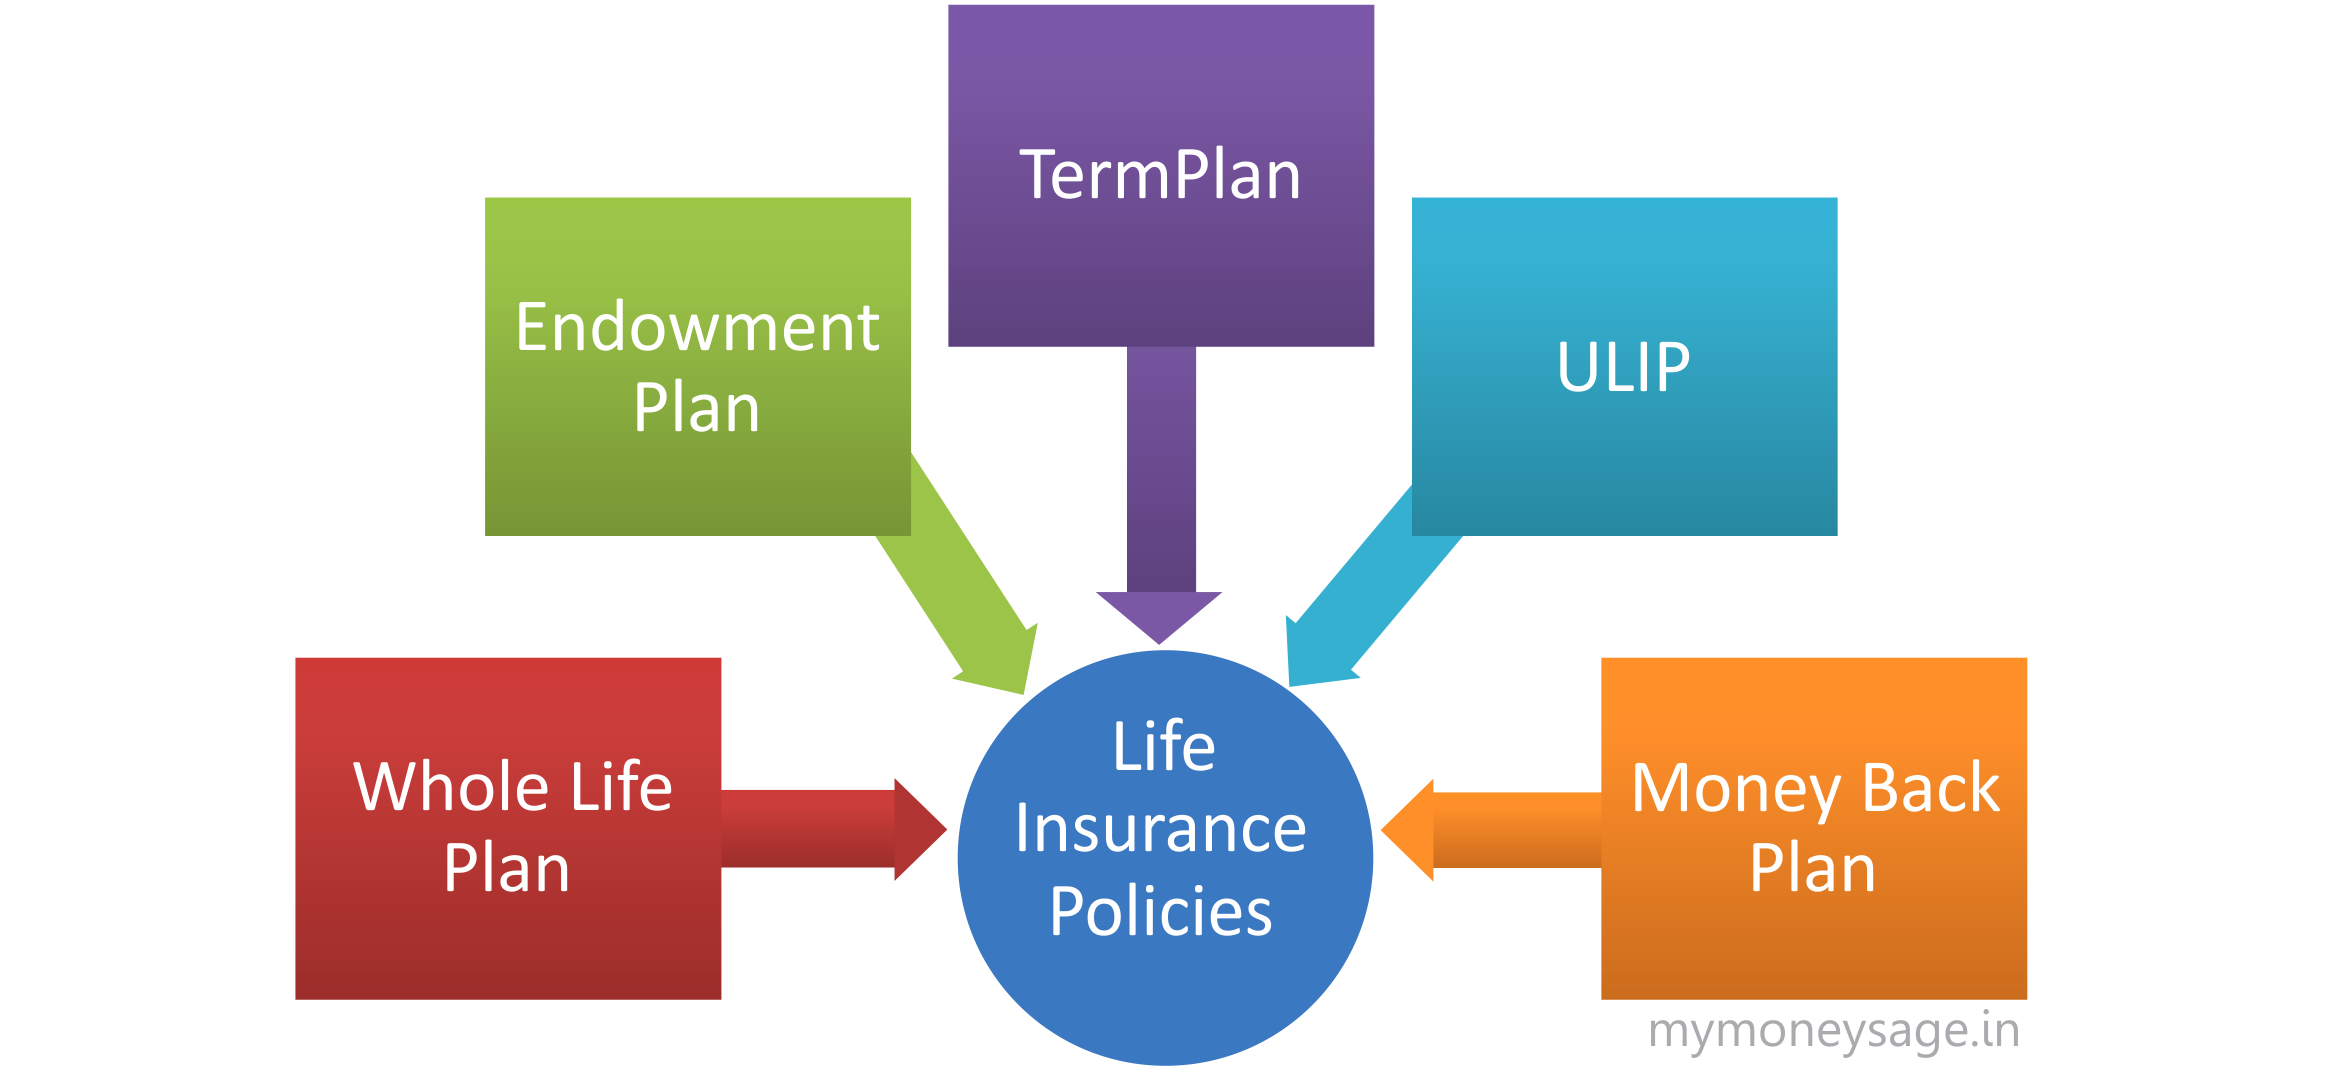 life insurance policies and premiums in Whole life insurance is a way to  standard whole life policies protect your loved ones  with custom whole life, you can pay premiums for a set period of time.